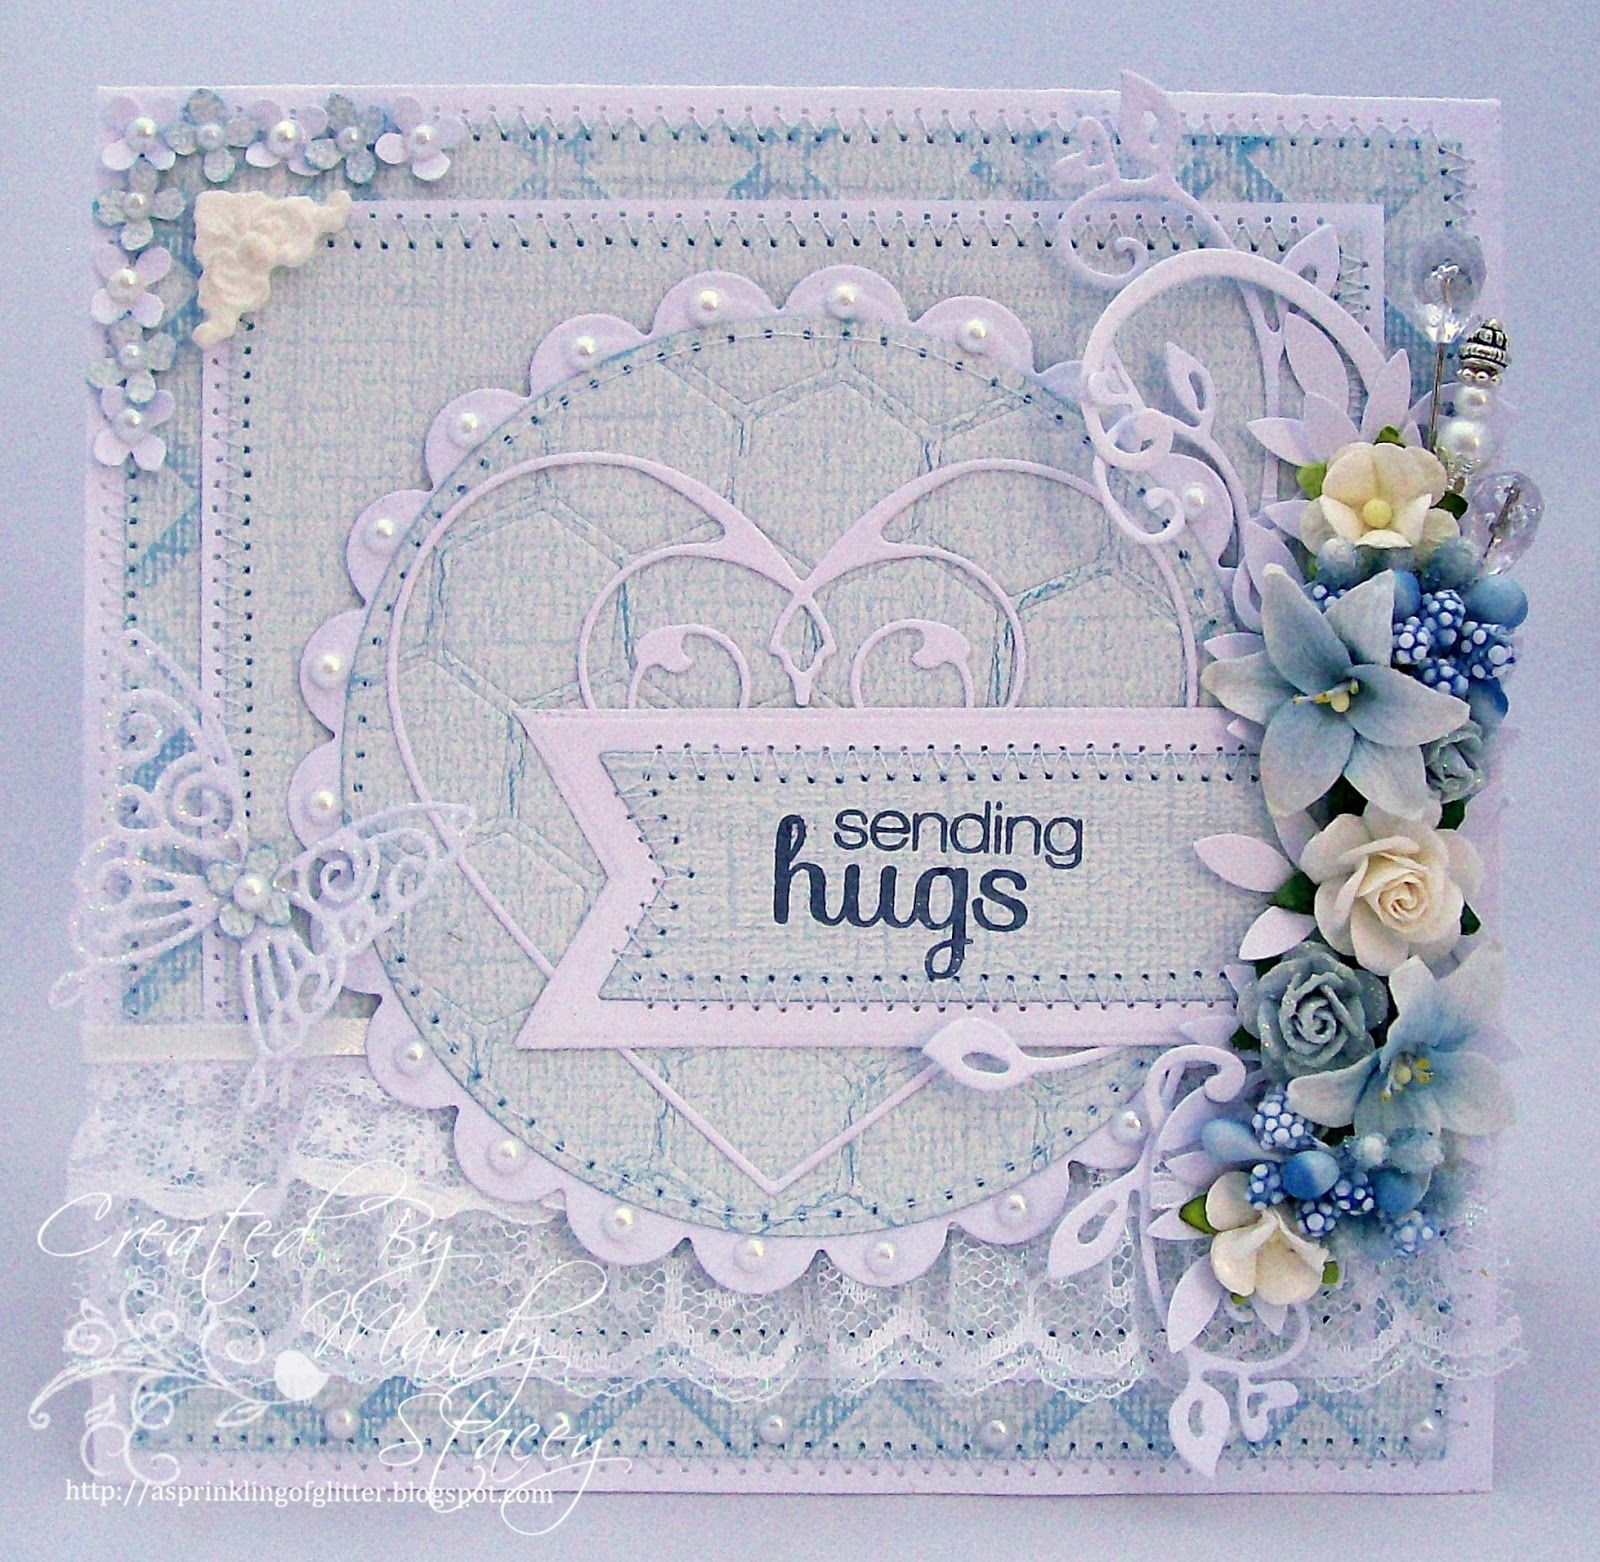 Simon Says Stamp Challenge | Tattered Lace Cards | Pinterest | Cards ...